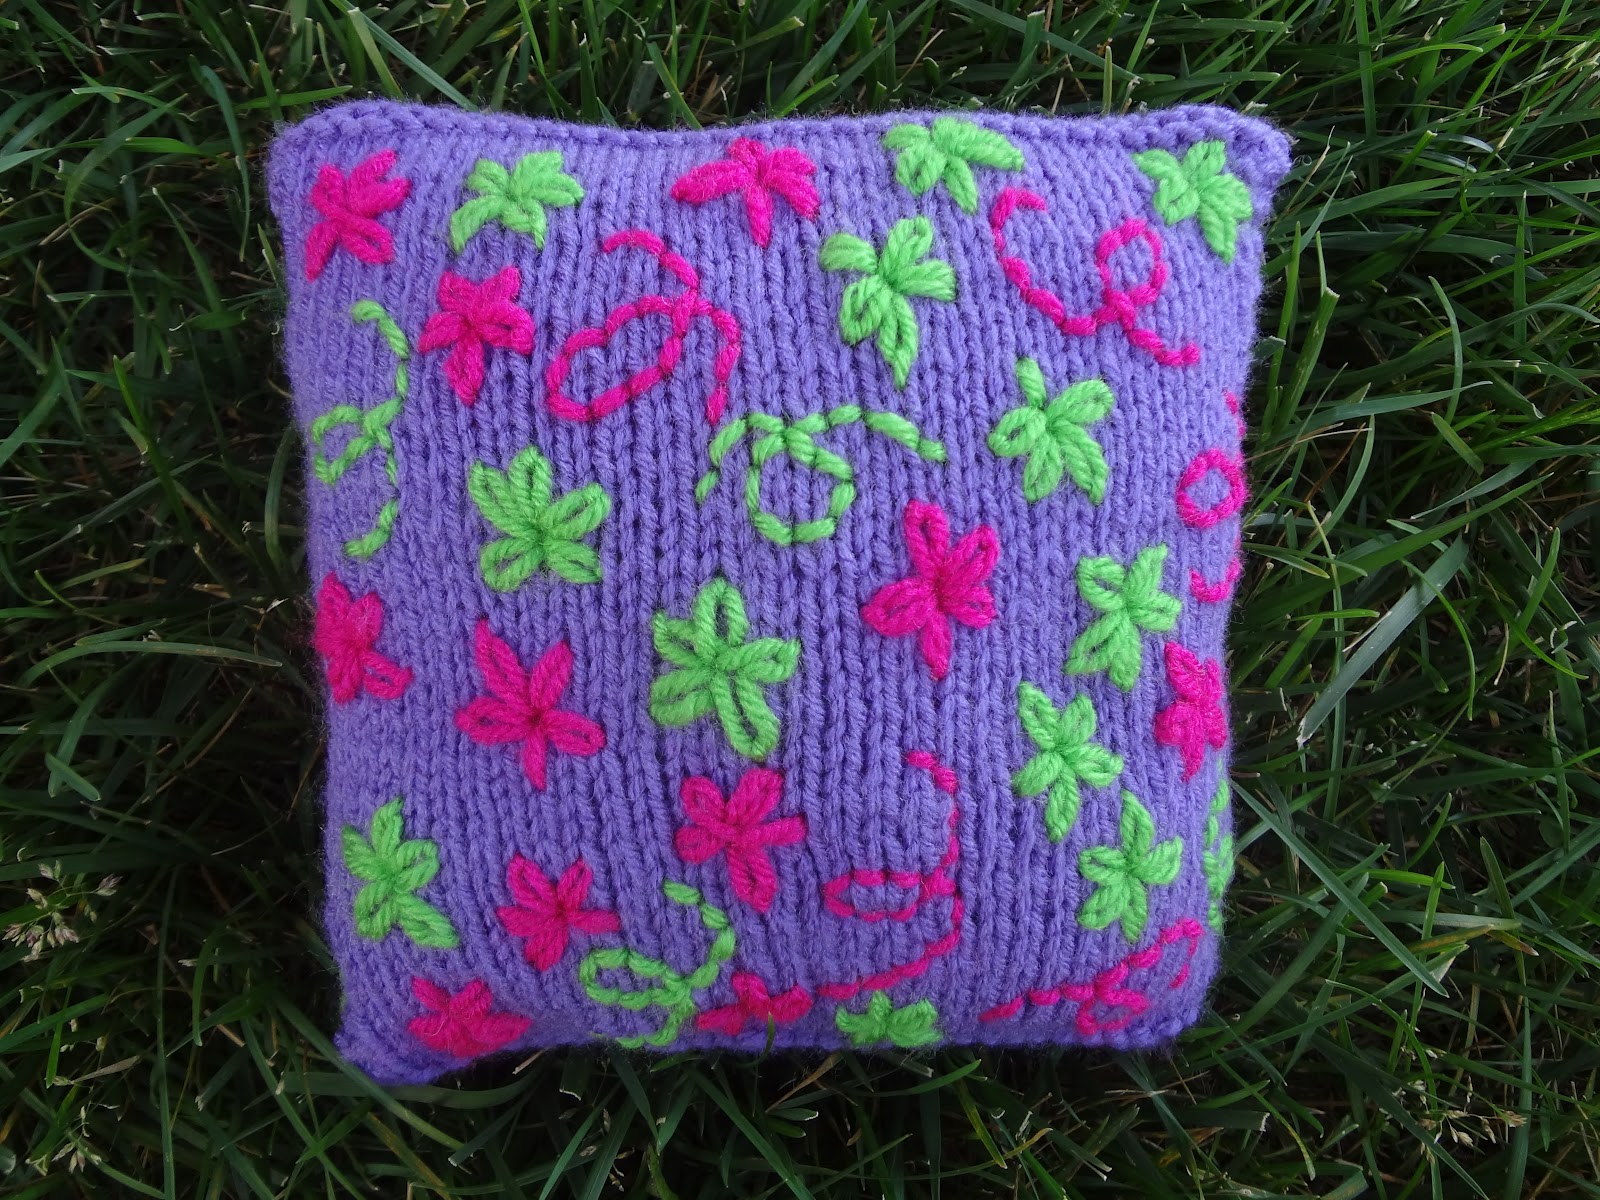 Knitting Pillow Pattern : Fiber flux free knitting pattern embroidered daisy pillow